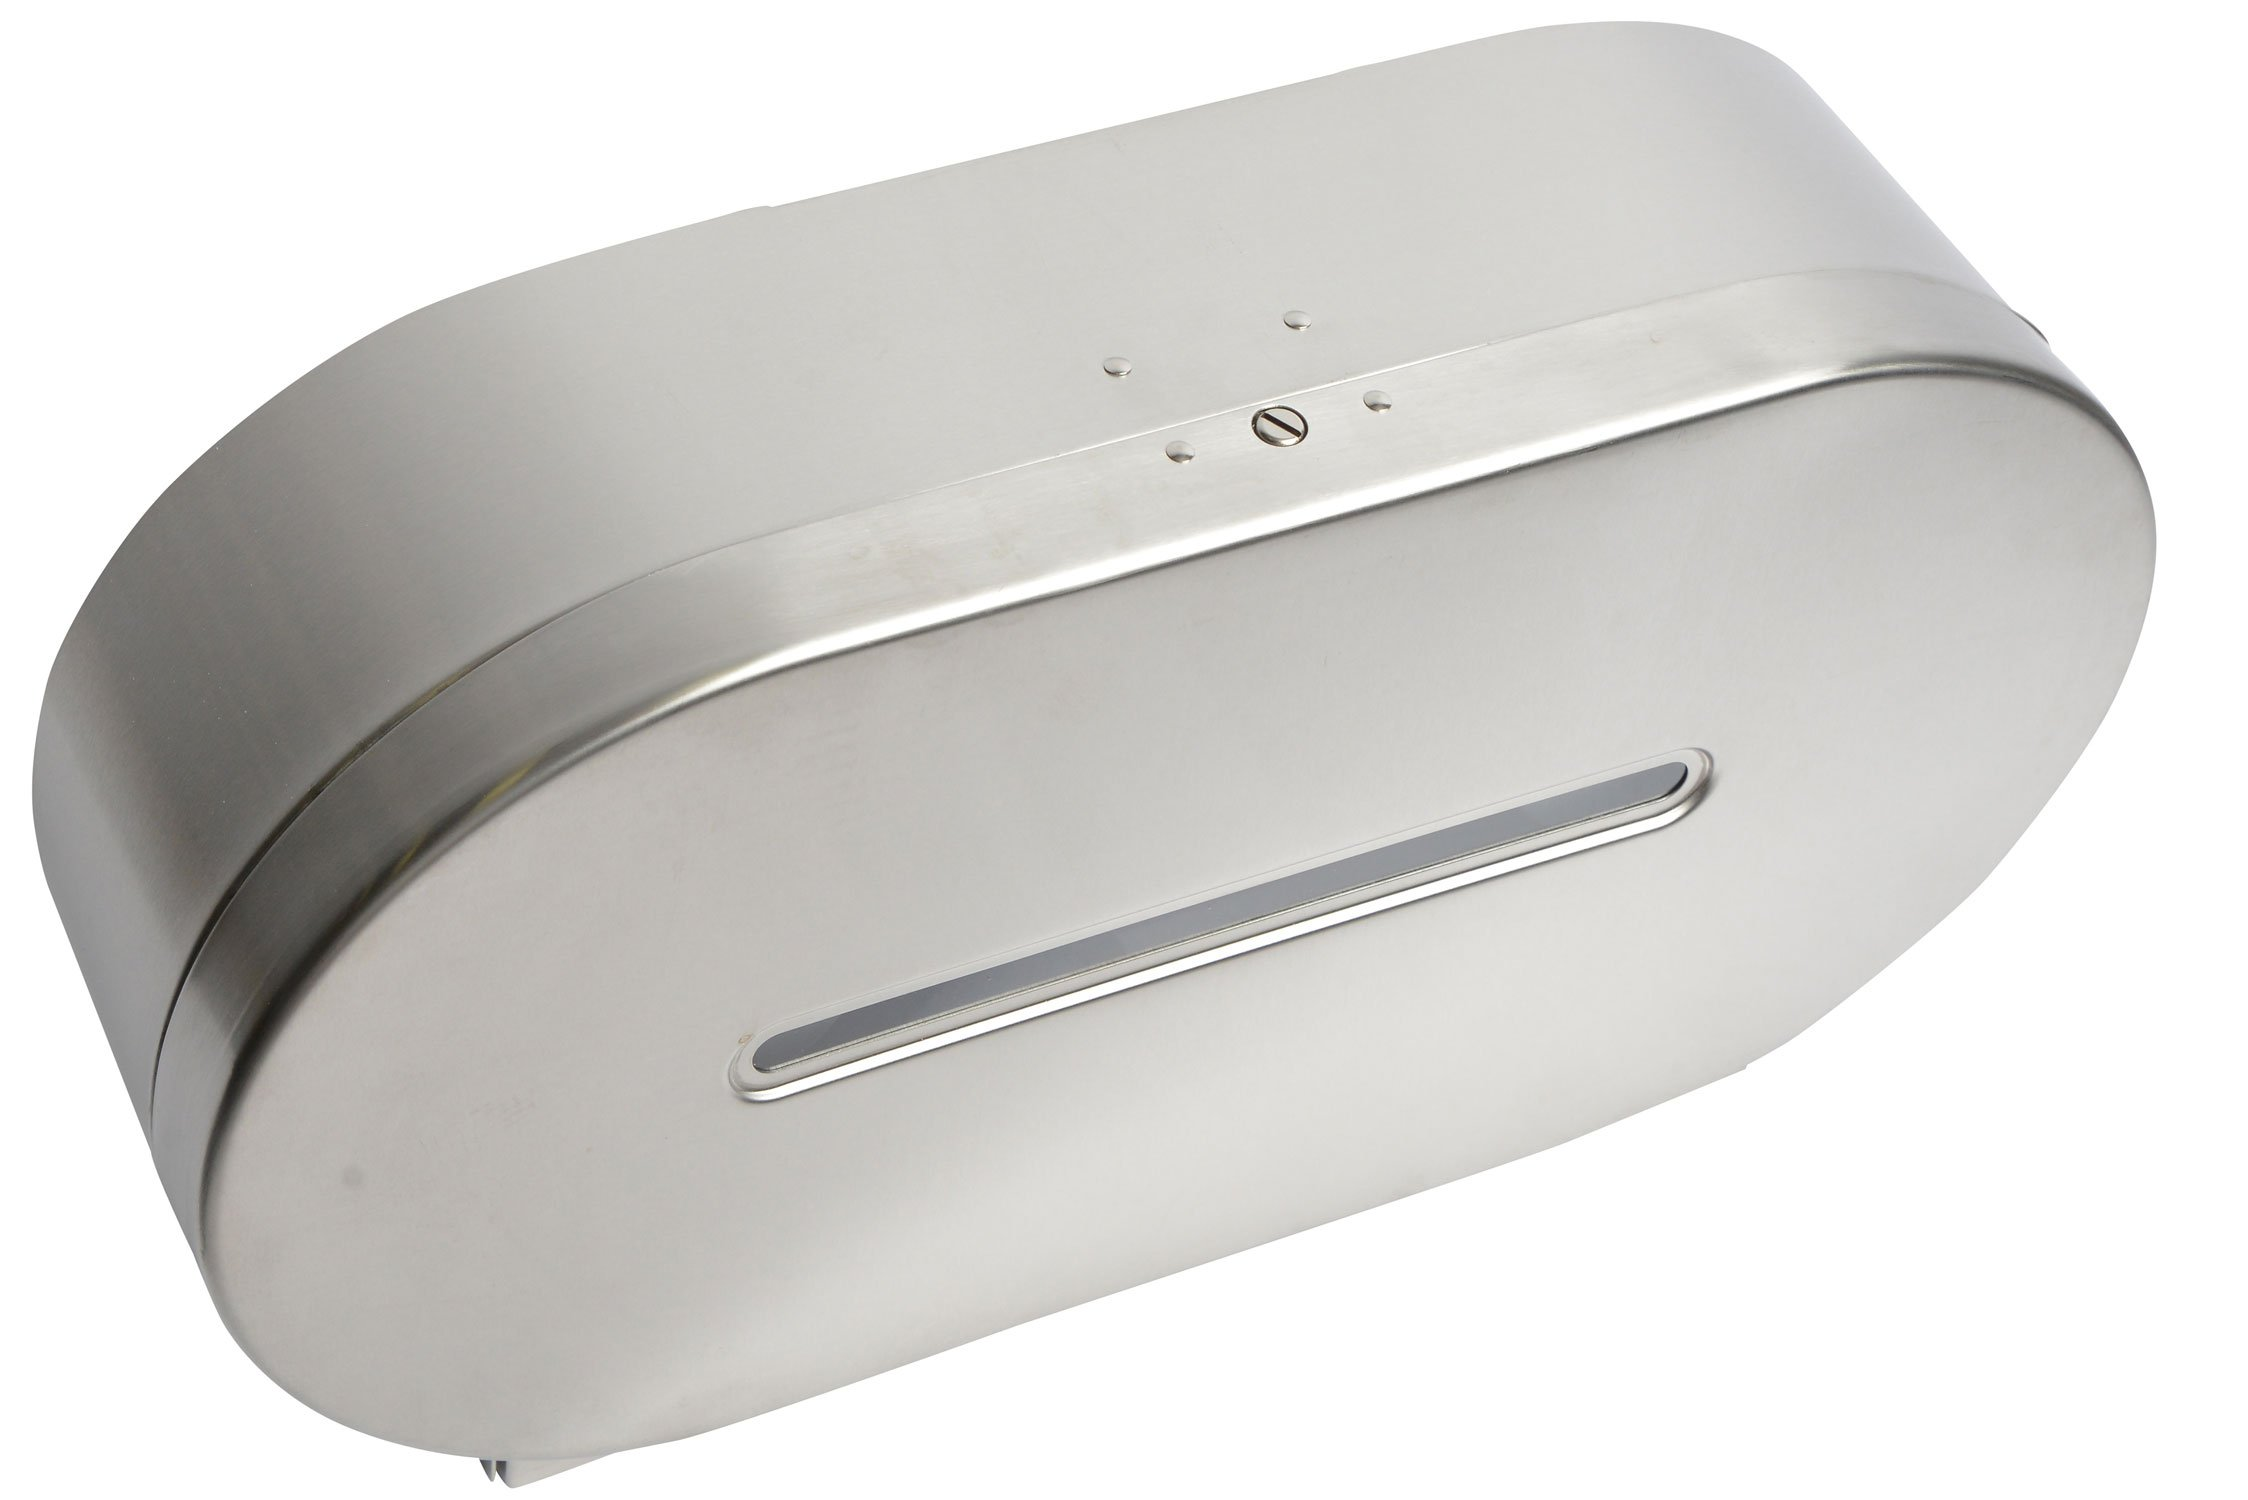 Janico 2513 Toilet Paper Dispenser, Double Roll Tissue Dispenser, Stainless Steel, Silver by Janico (Image #2)